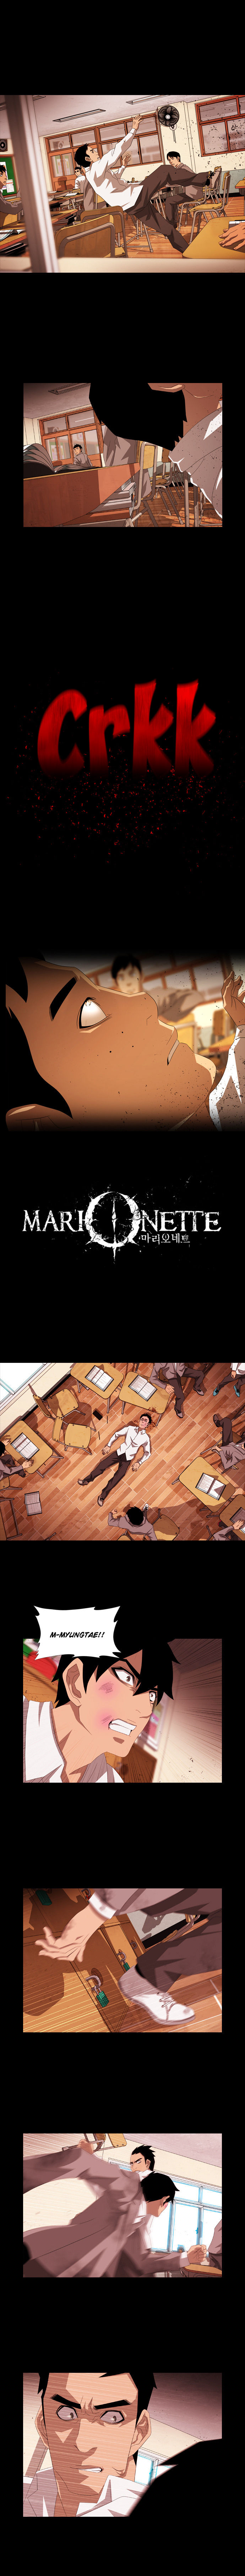 Marionette (WOO Kang-Sik) 19 Page 1